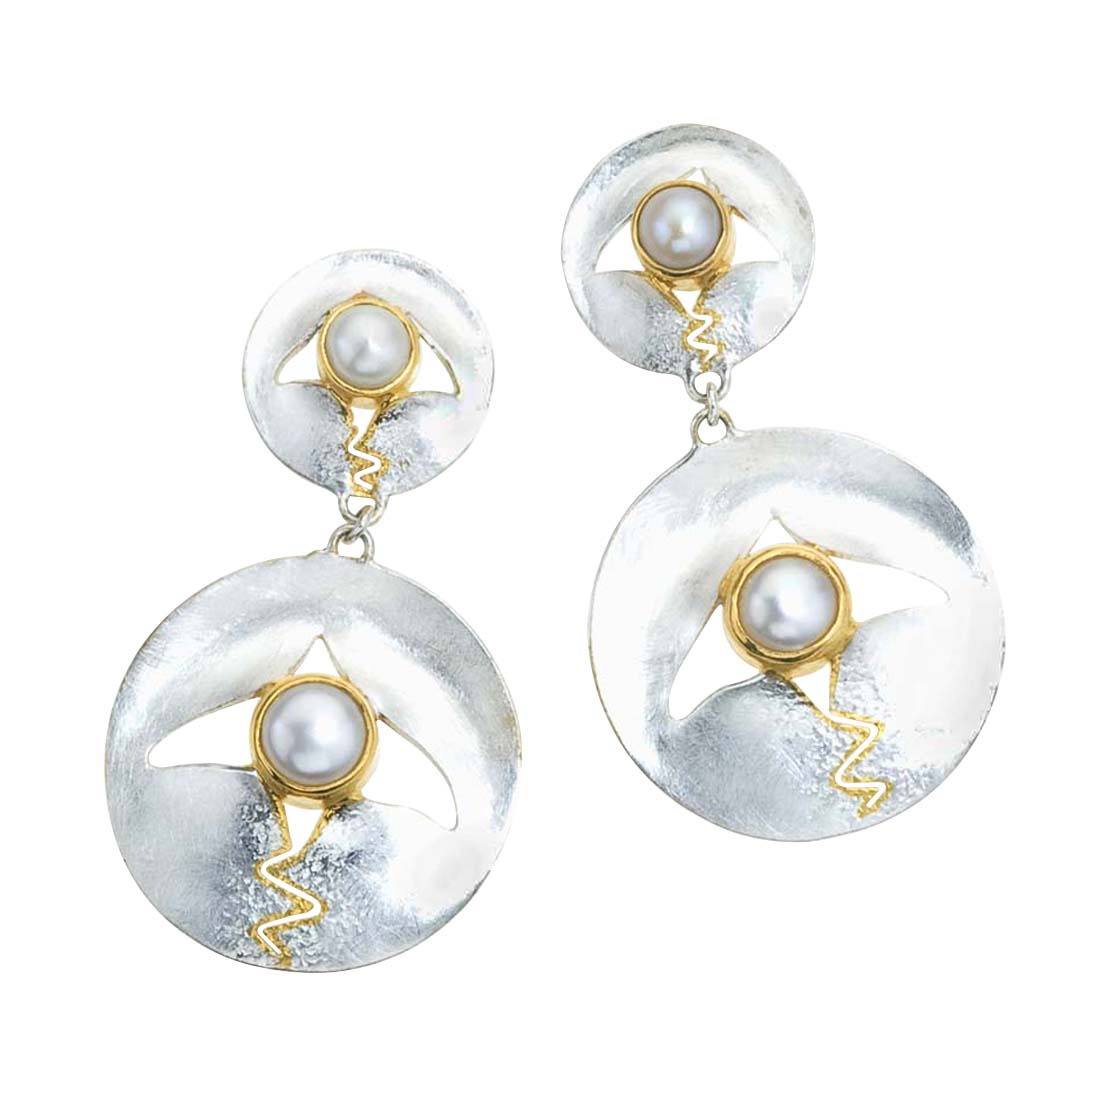 Pearl, Mother of Pearl Drop Earrings by Ax Jewelry